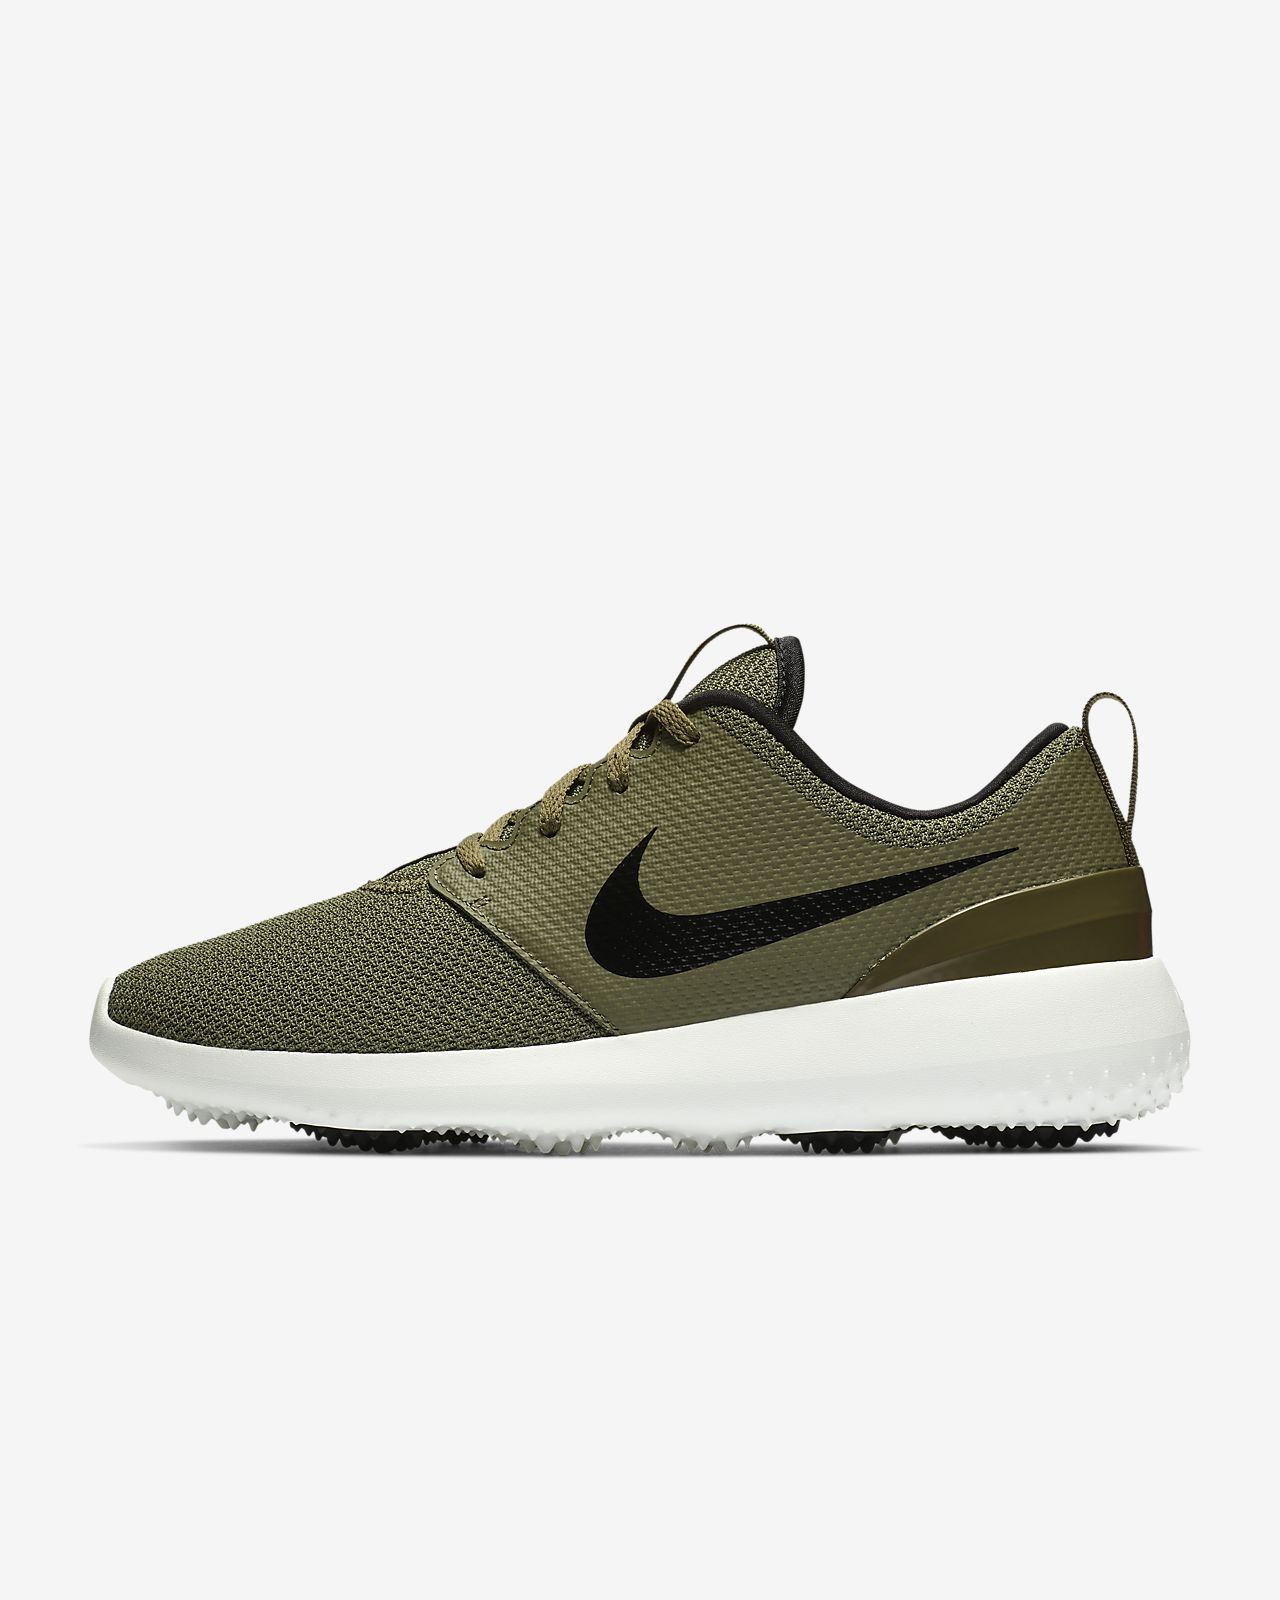 premium selection 5b4ae fcd60 Men s Golf Shoe. Nike Roshe G